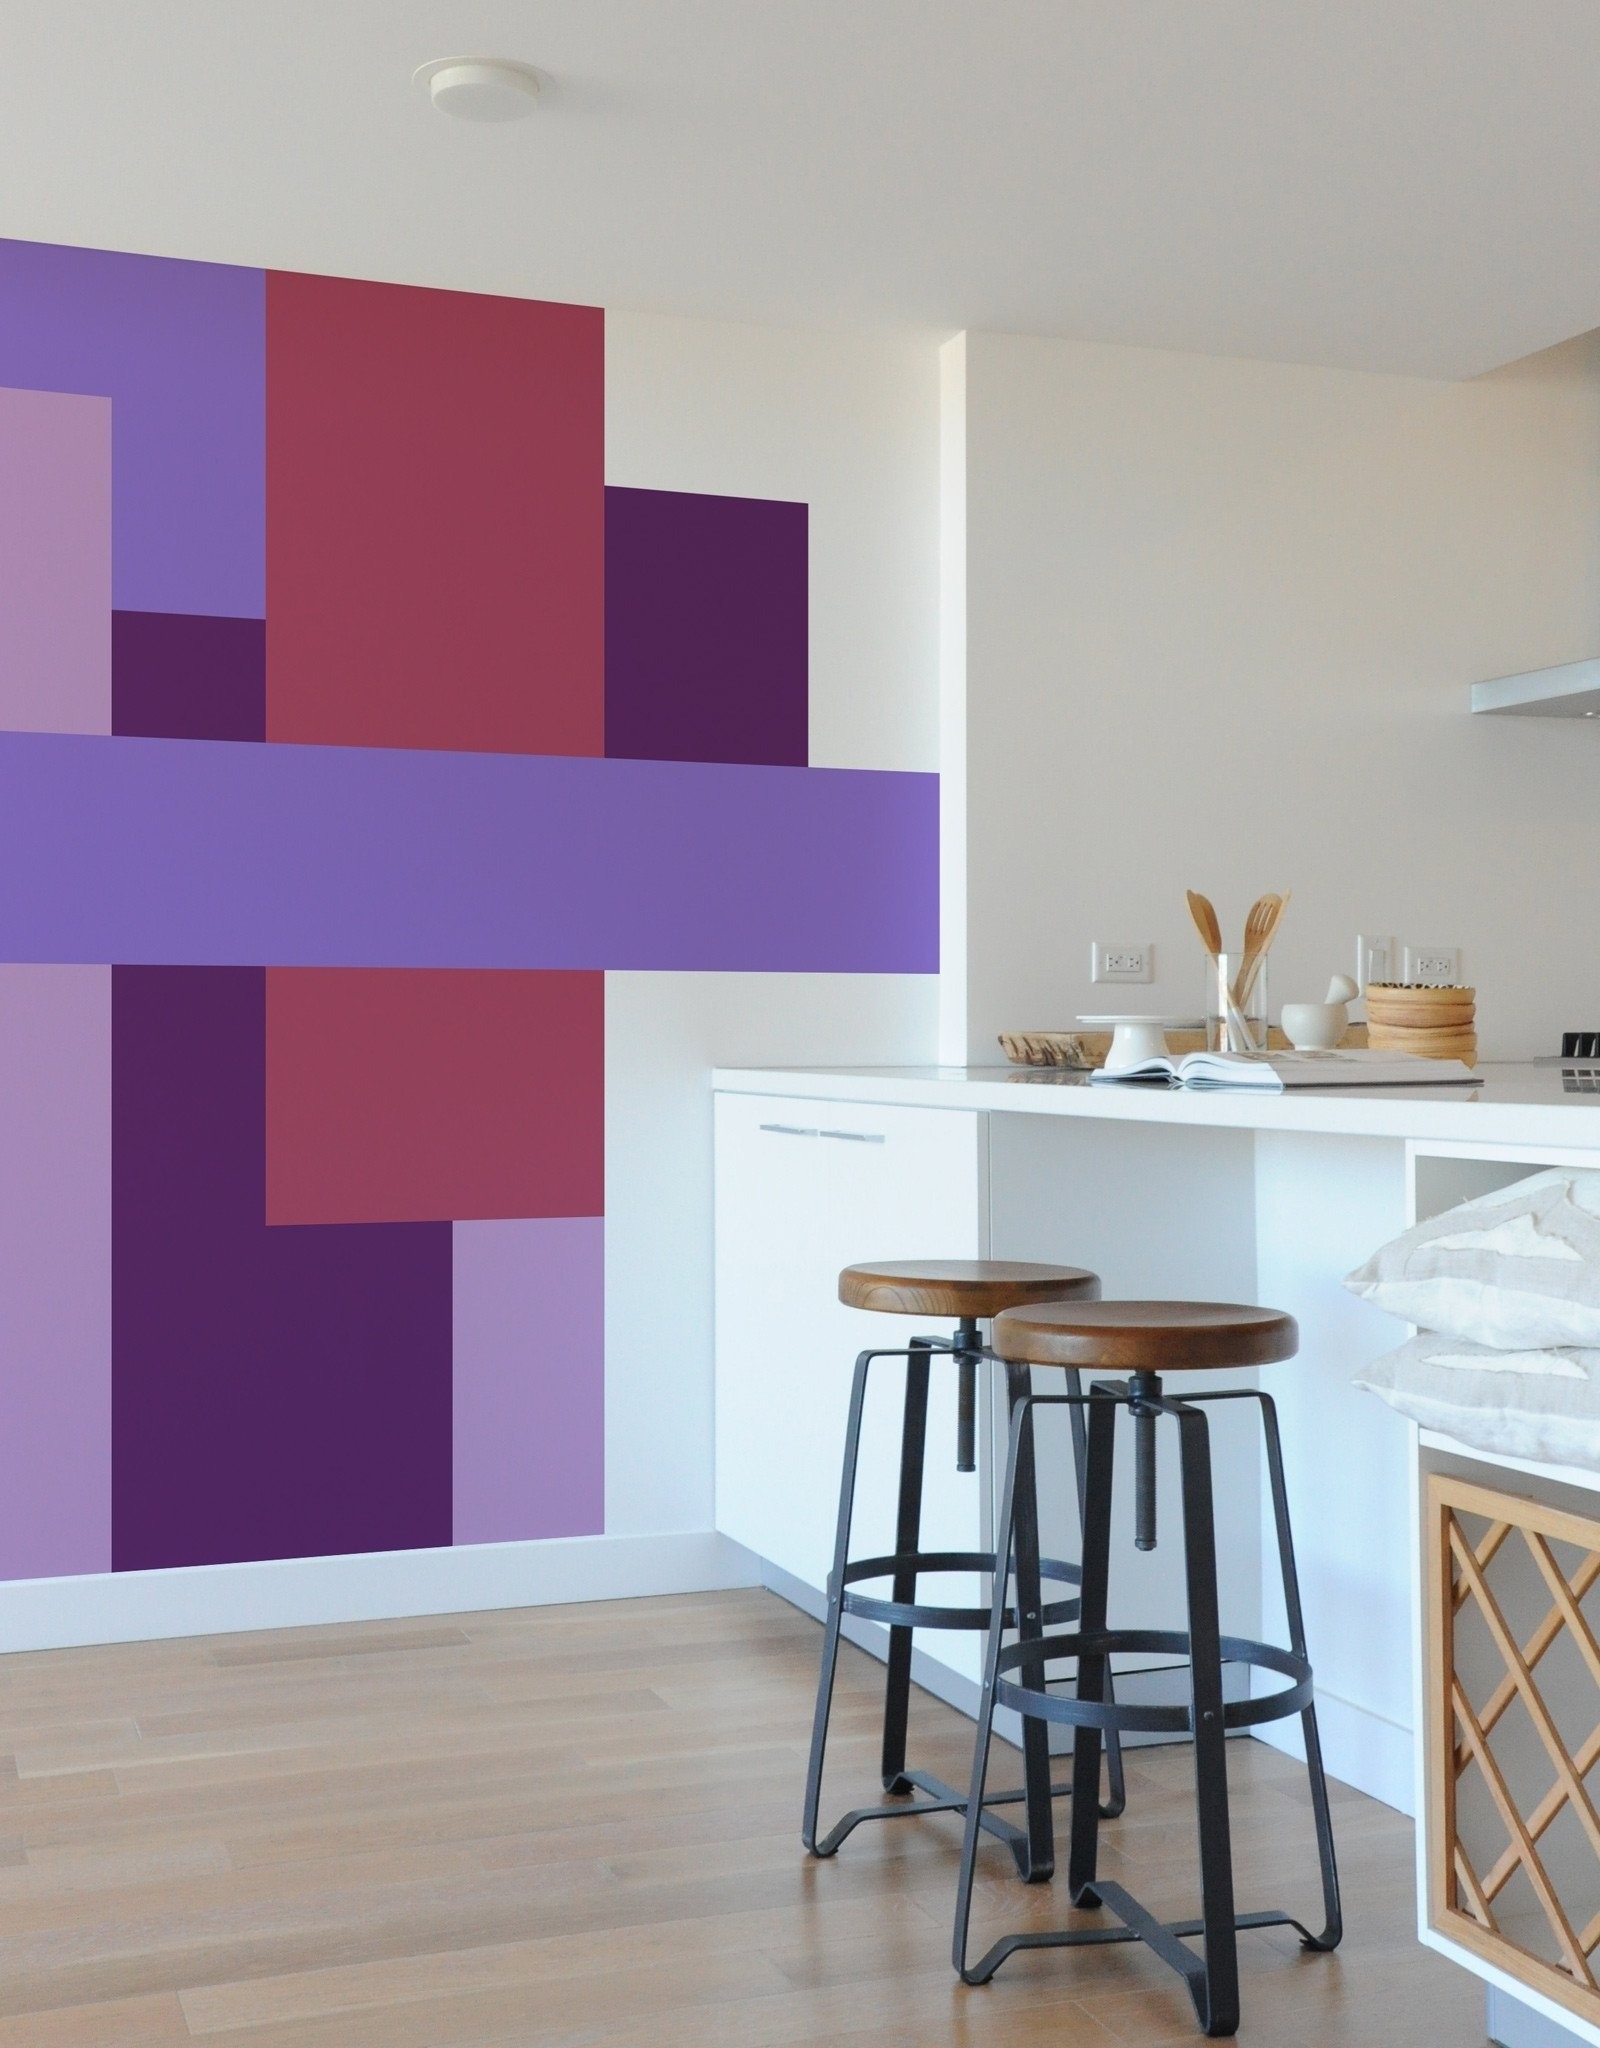 Current Unbelievable Color Block Wall Art Self Adhesive Vinyl Stickers Regarding Blik Wall Art (View 8 of 15)